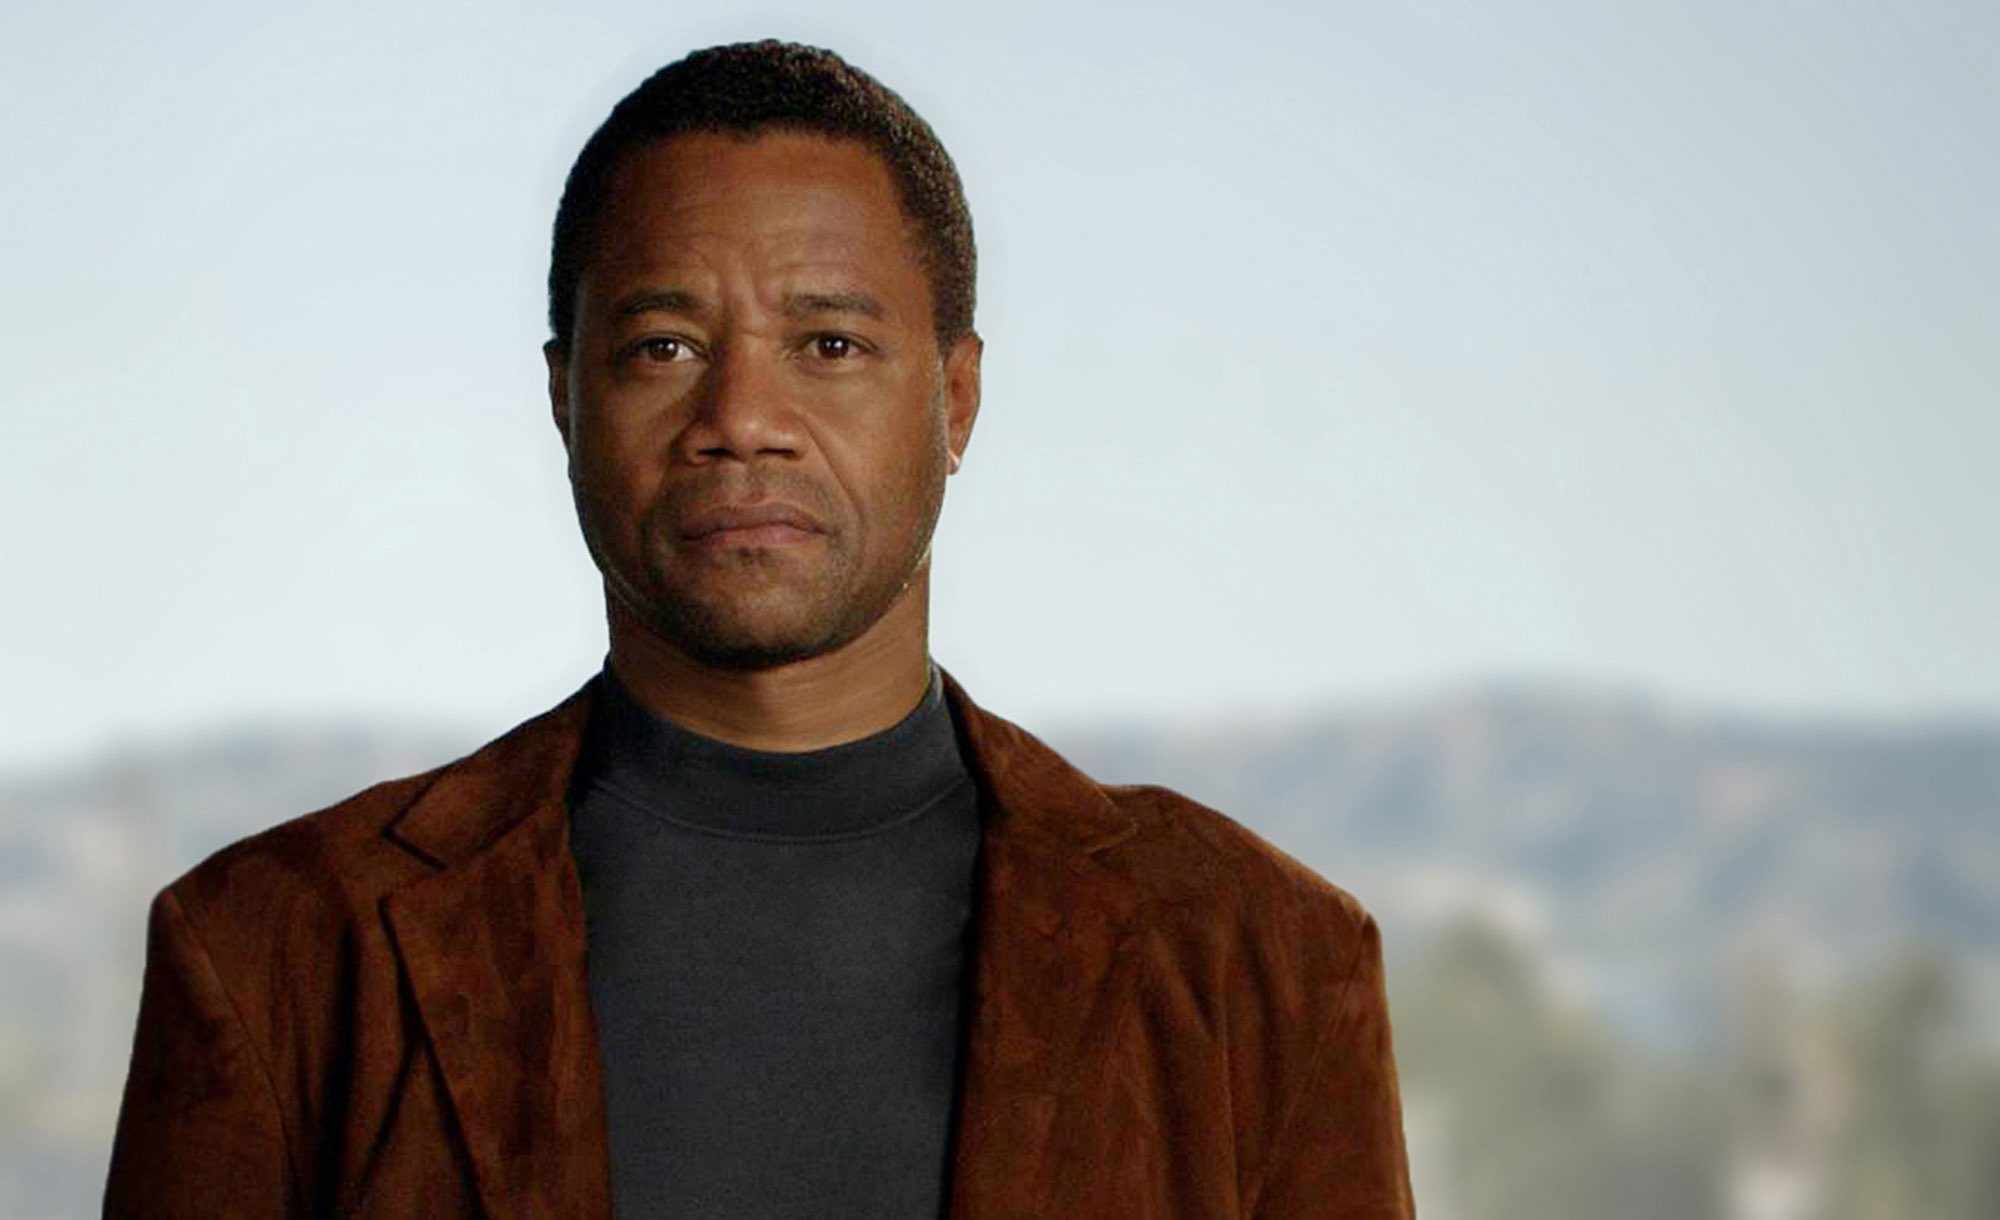 Cuba Gooding, Jr. as O.J. Simpson in 'American Crime Story: The People v. O.J. Simpson.' (FX photo)